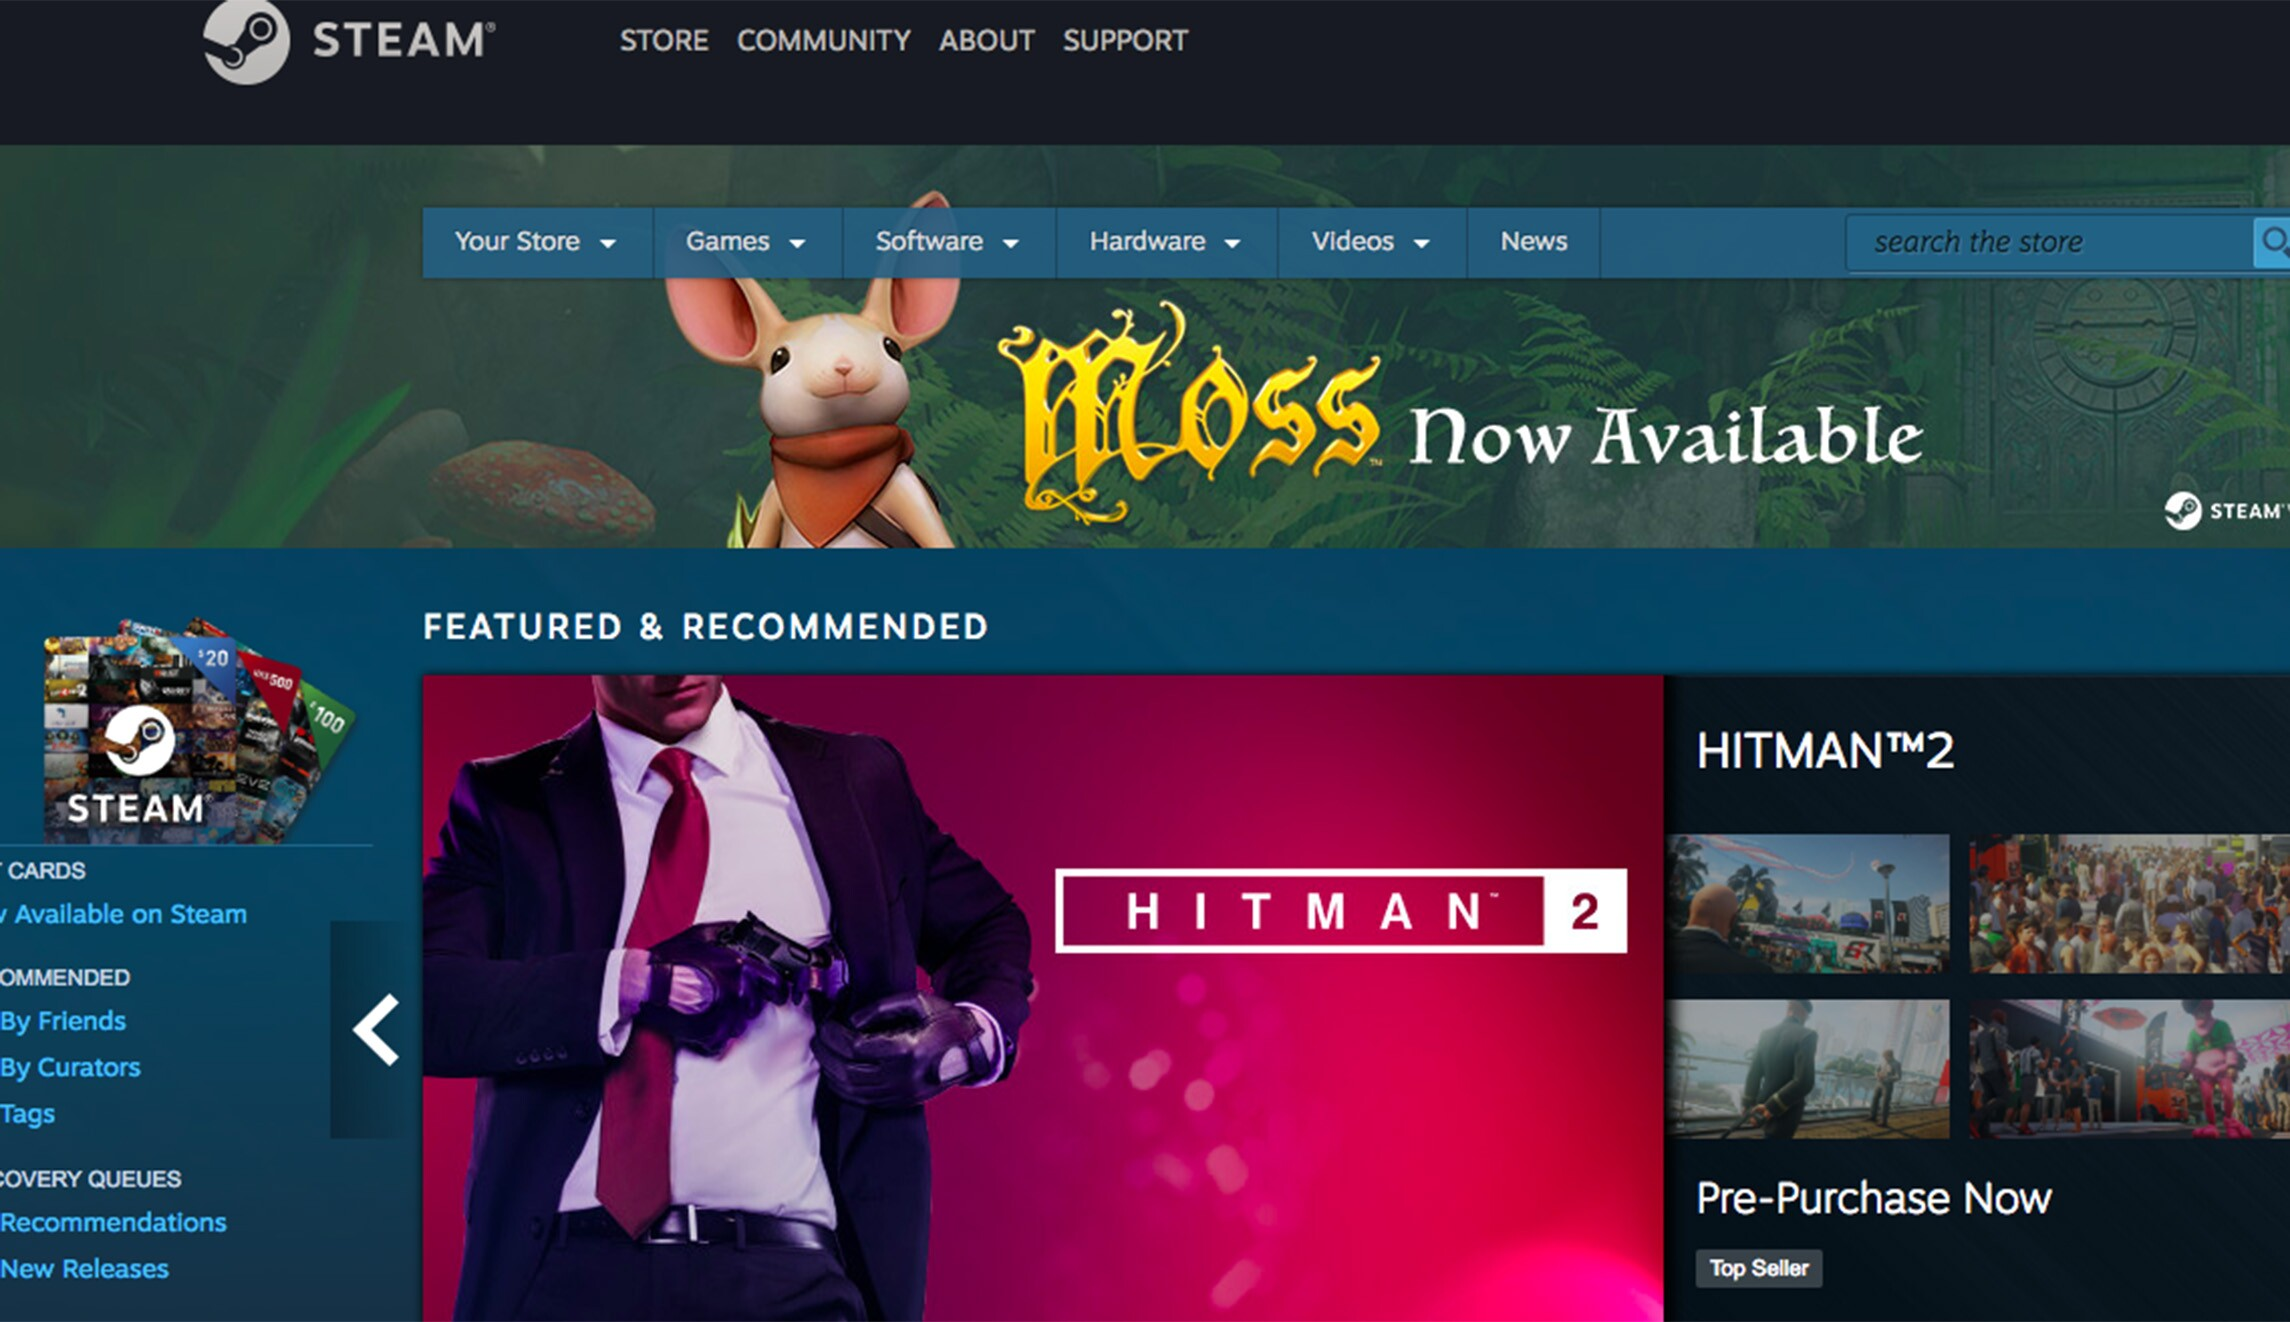 Valve is right to protect its Steam gaming platform from